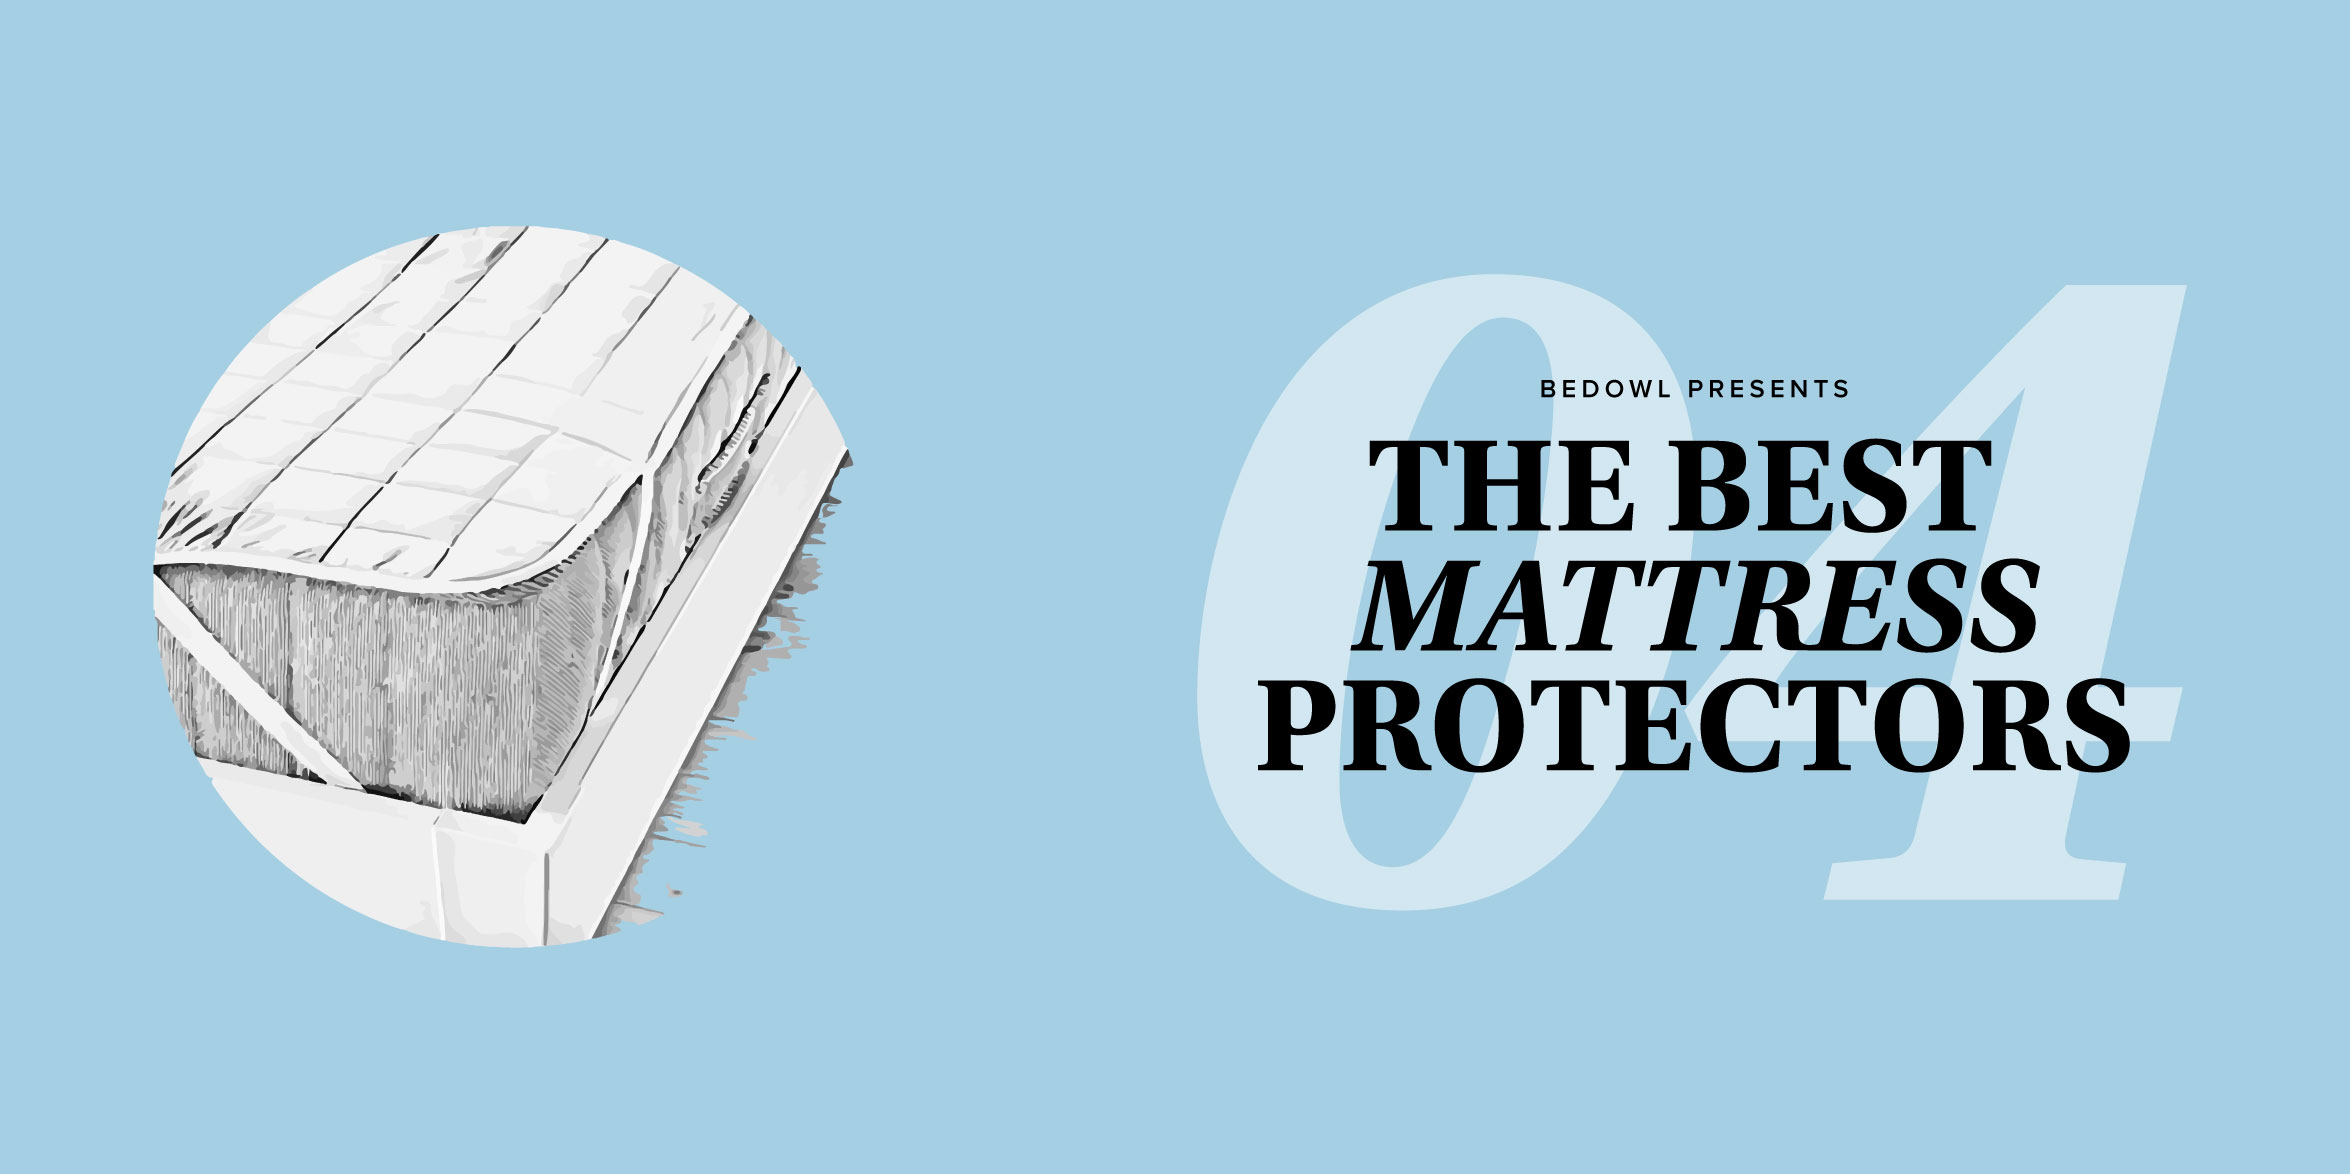 The Best Mattress Protector for 2017 by Bedowl